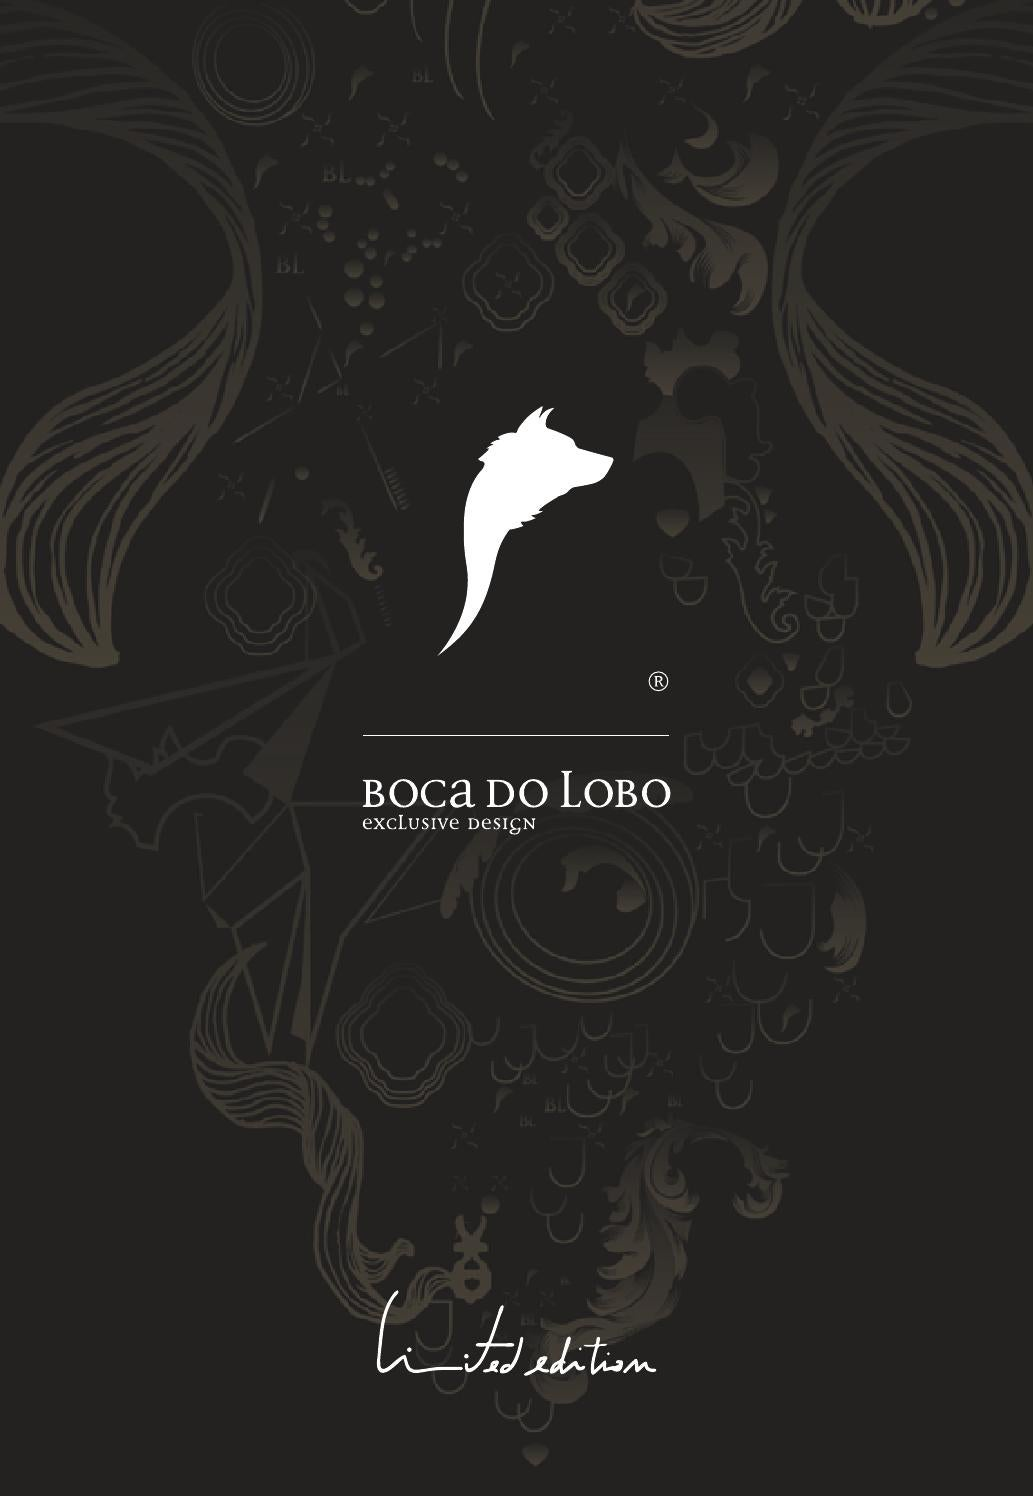 boca do lobo exclusive design limited edition. Black Bedroom Furniture Sets. Home Design Ideas